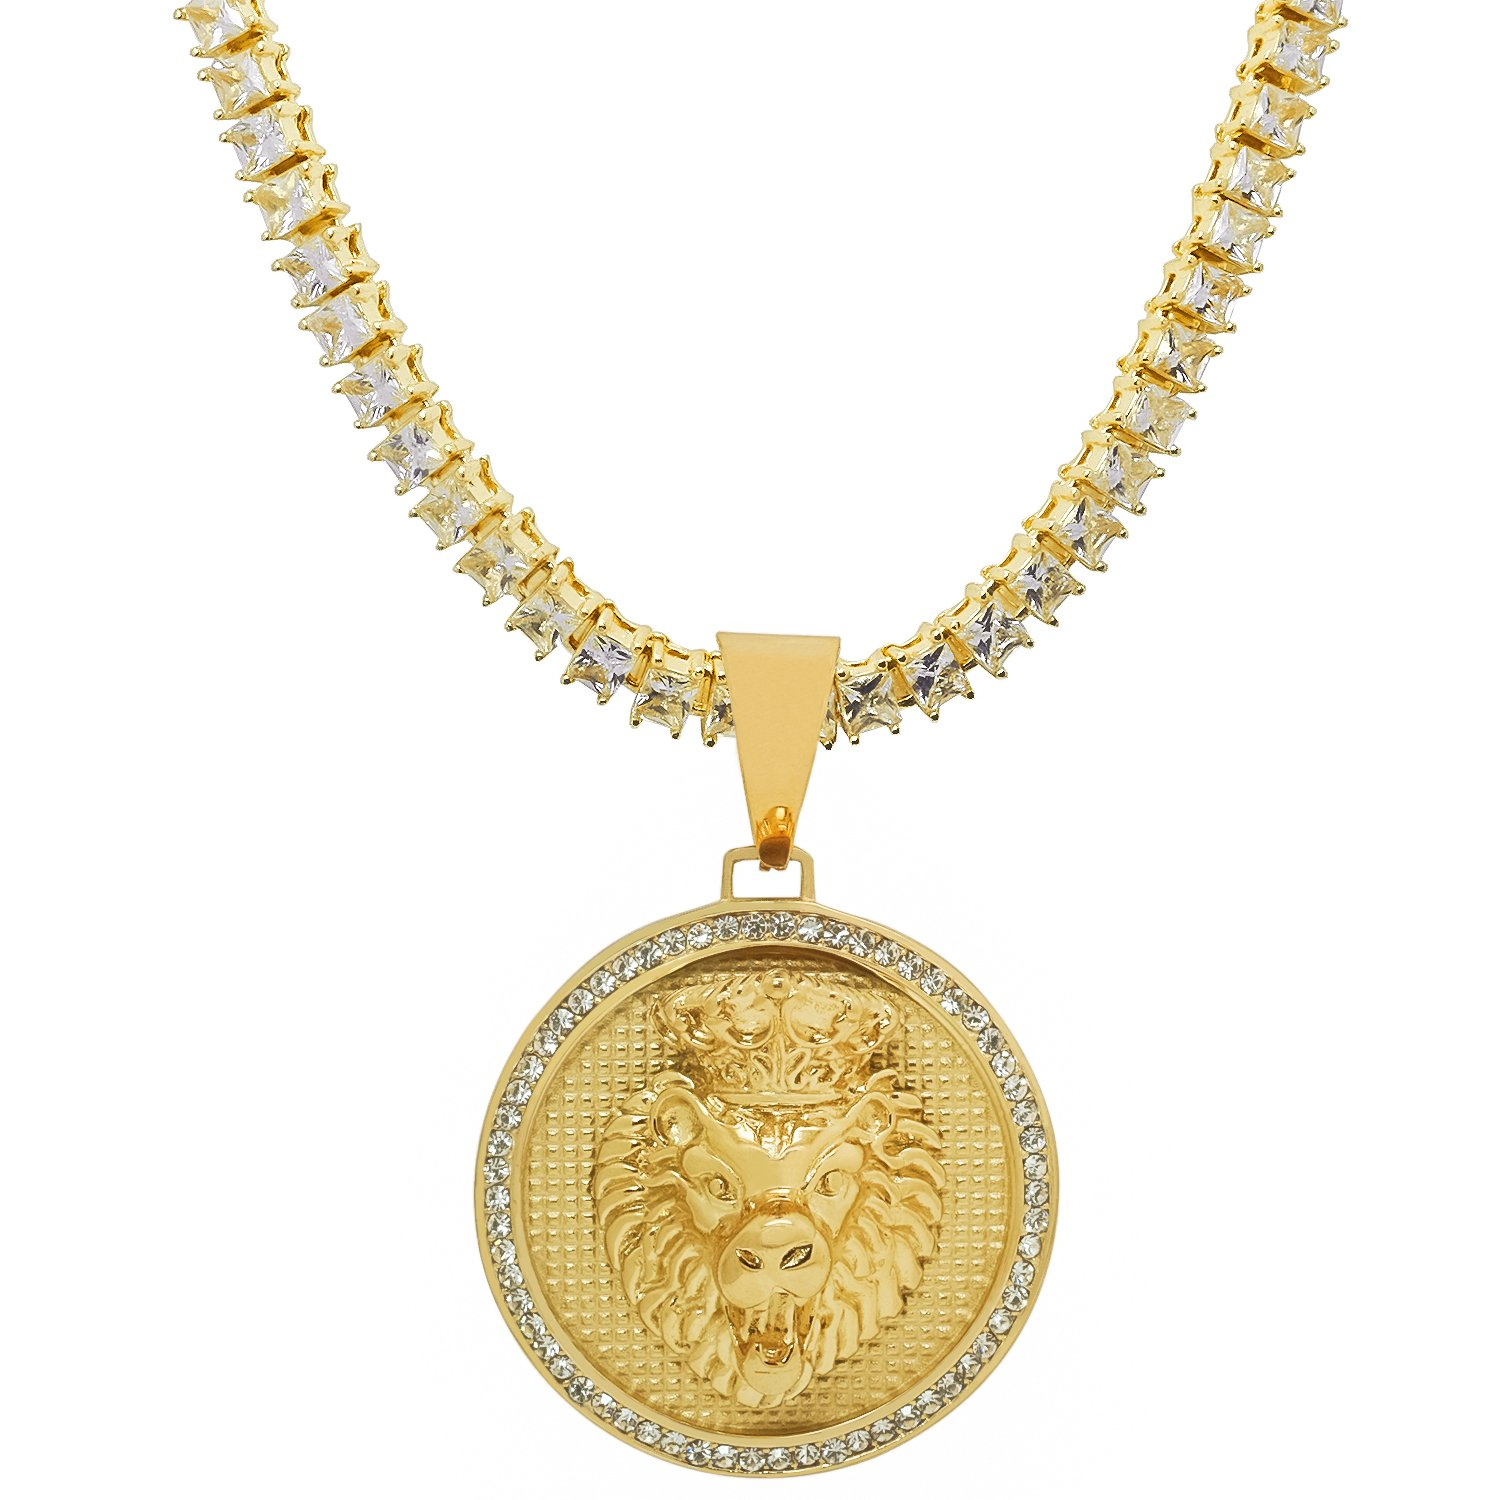 Stainless Steel Yellow Gold-Tone Iced Out Hip Hop Bling Crowned Lion Head Medallion Pendant 1 Row Square Cubic Zirconia Princess Cut Stone Tennis Chain 20 Necklace Choker Chain